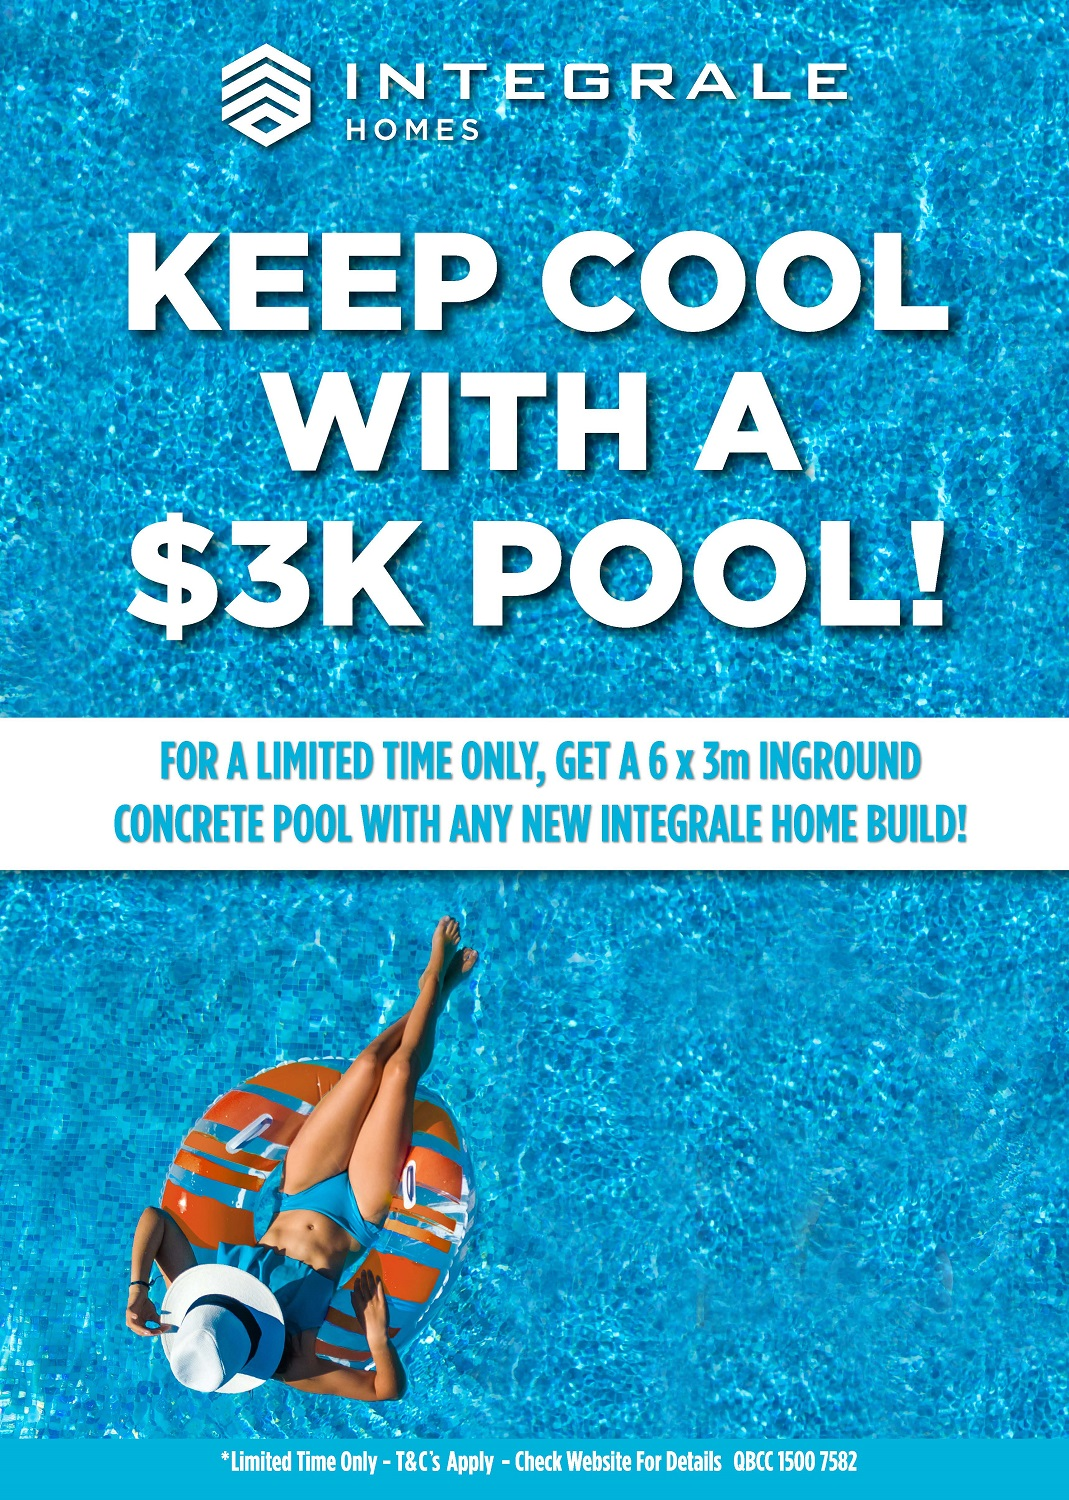 3K-POOL_A4-Flyer Promo Terms And Conditions - Keep Cool